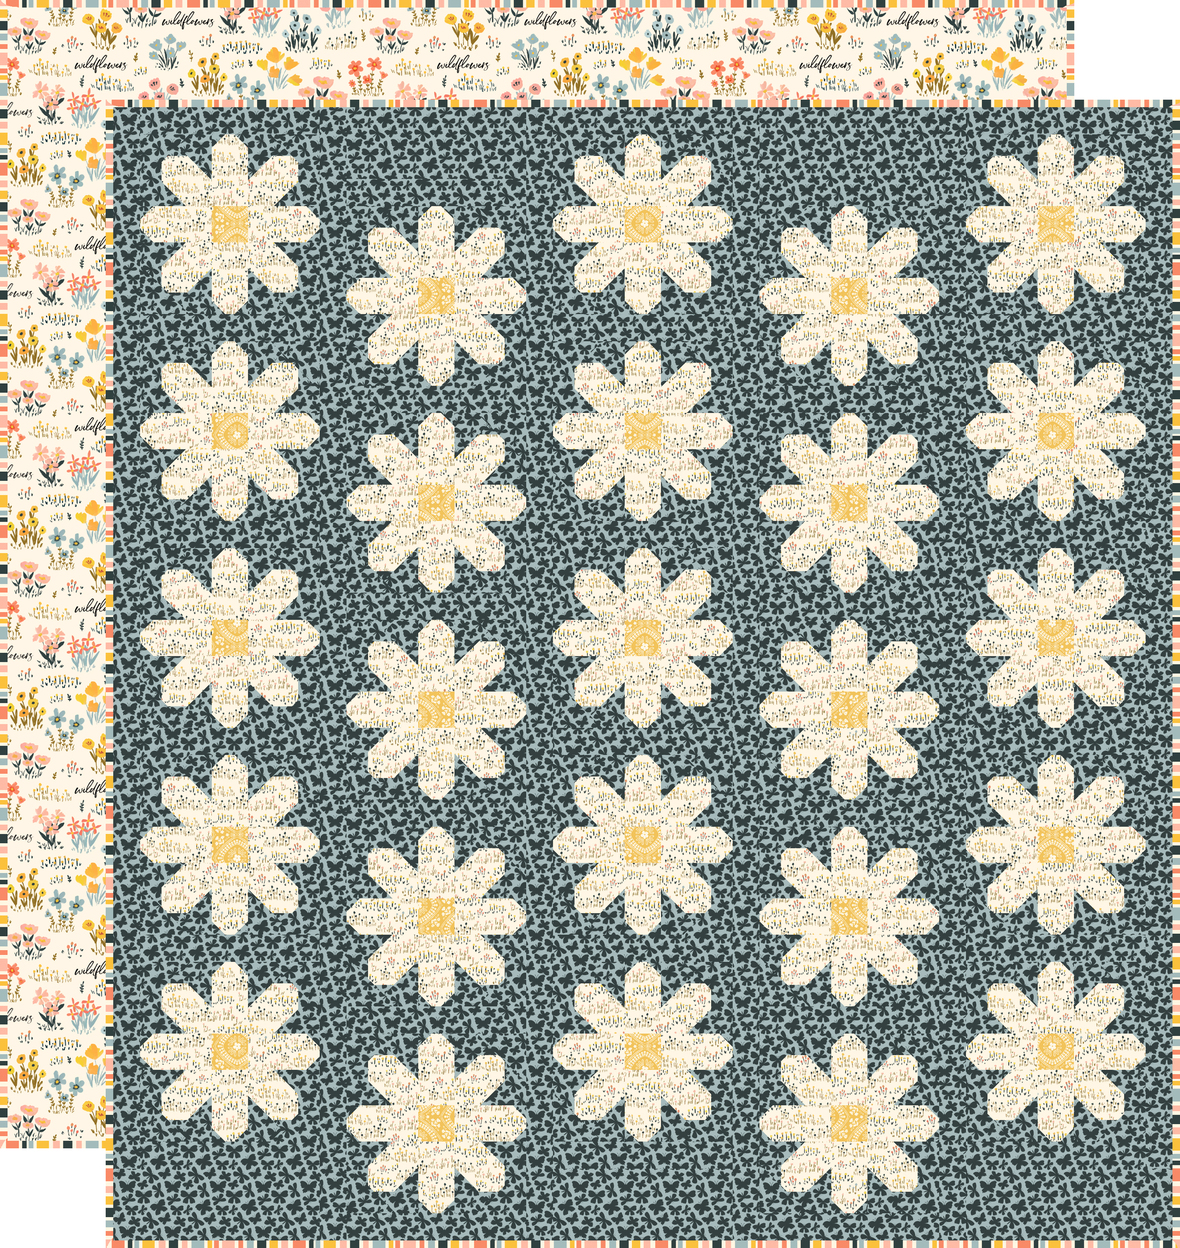 Blissful Blooms Fresh as a Daisy with backing